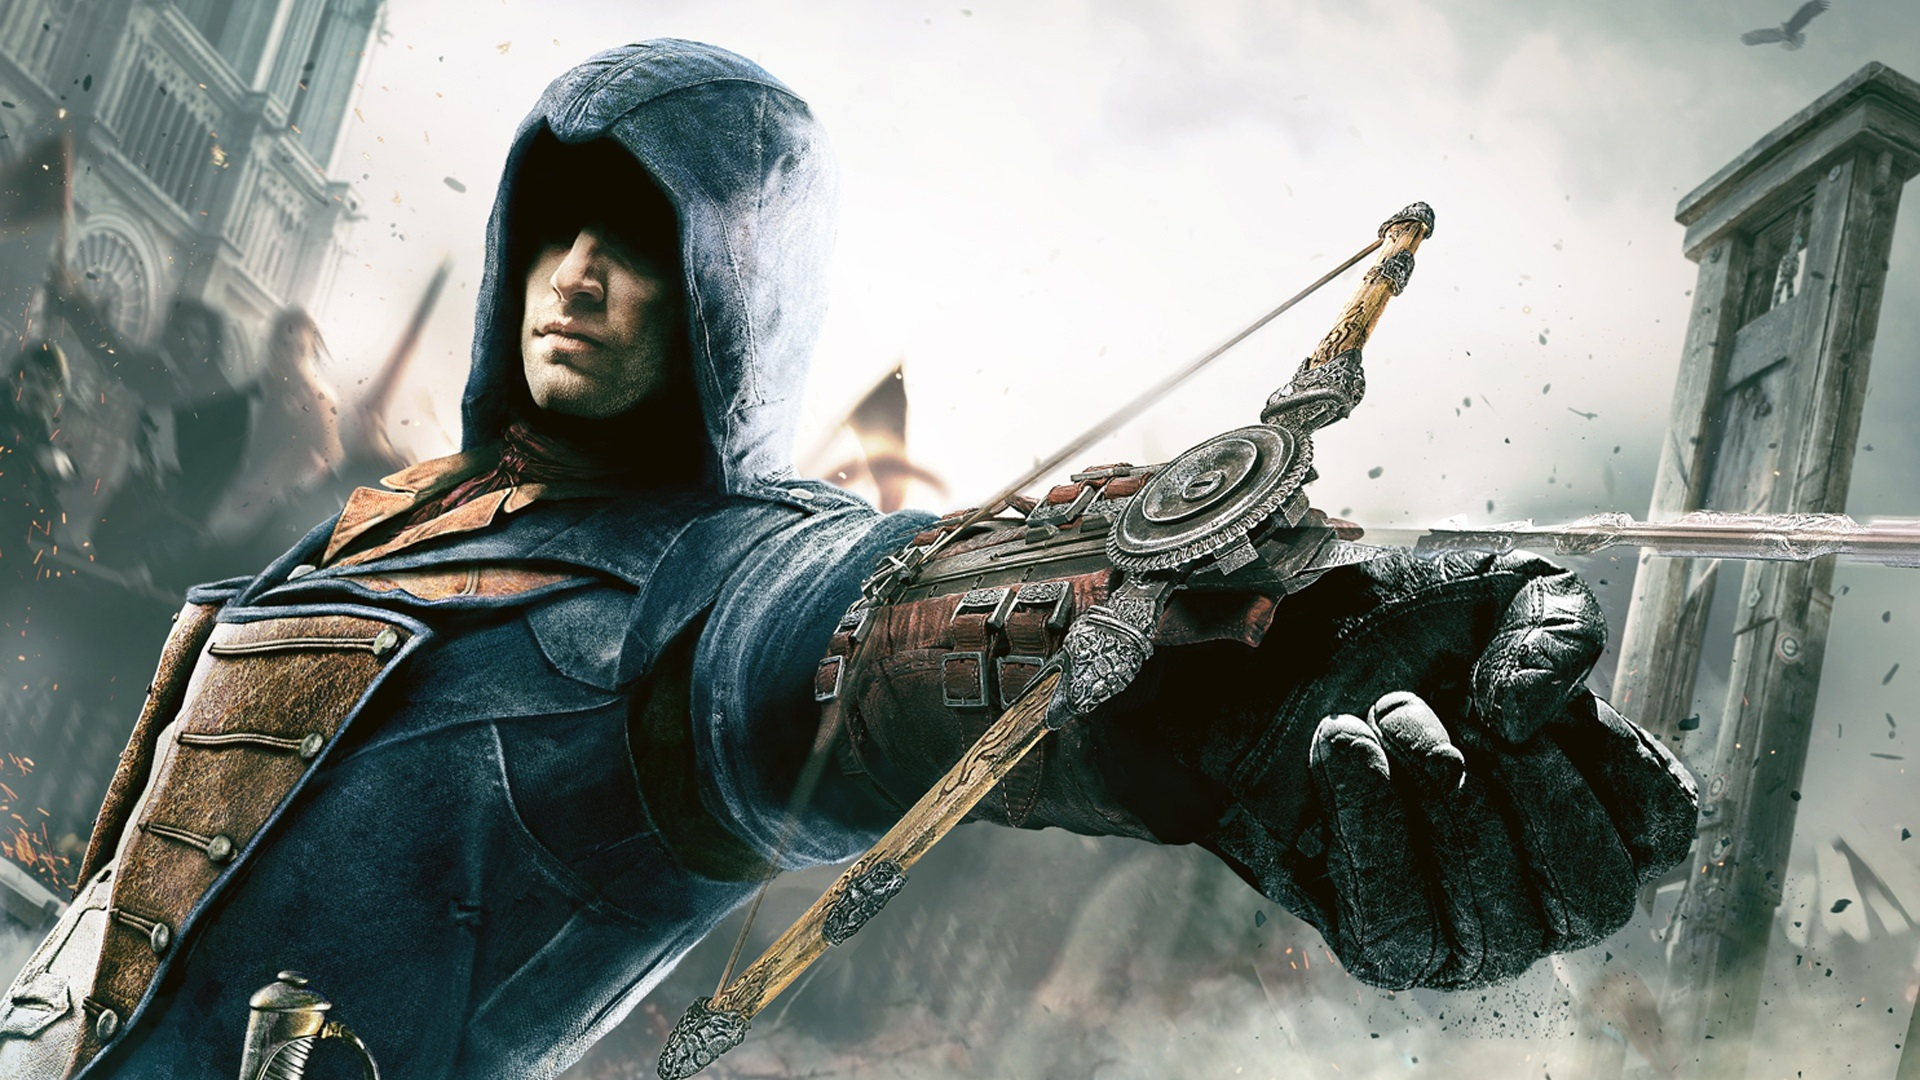 Wallpaper assassin 39 s creed unity crossbow hand - Assassin s creed unity wallpaper ...